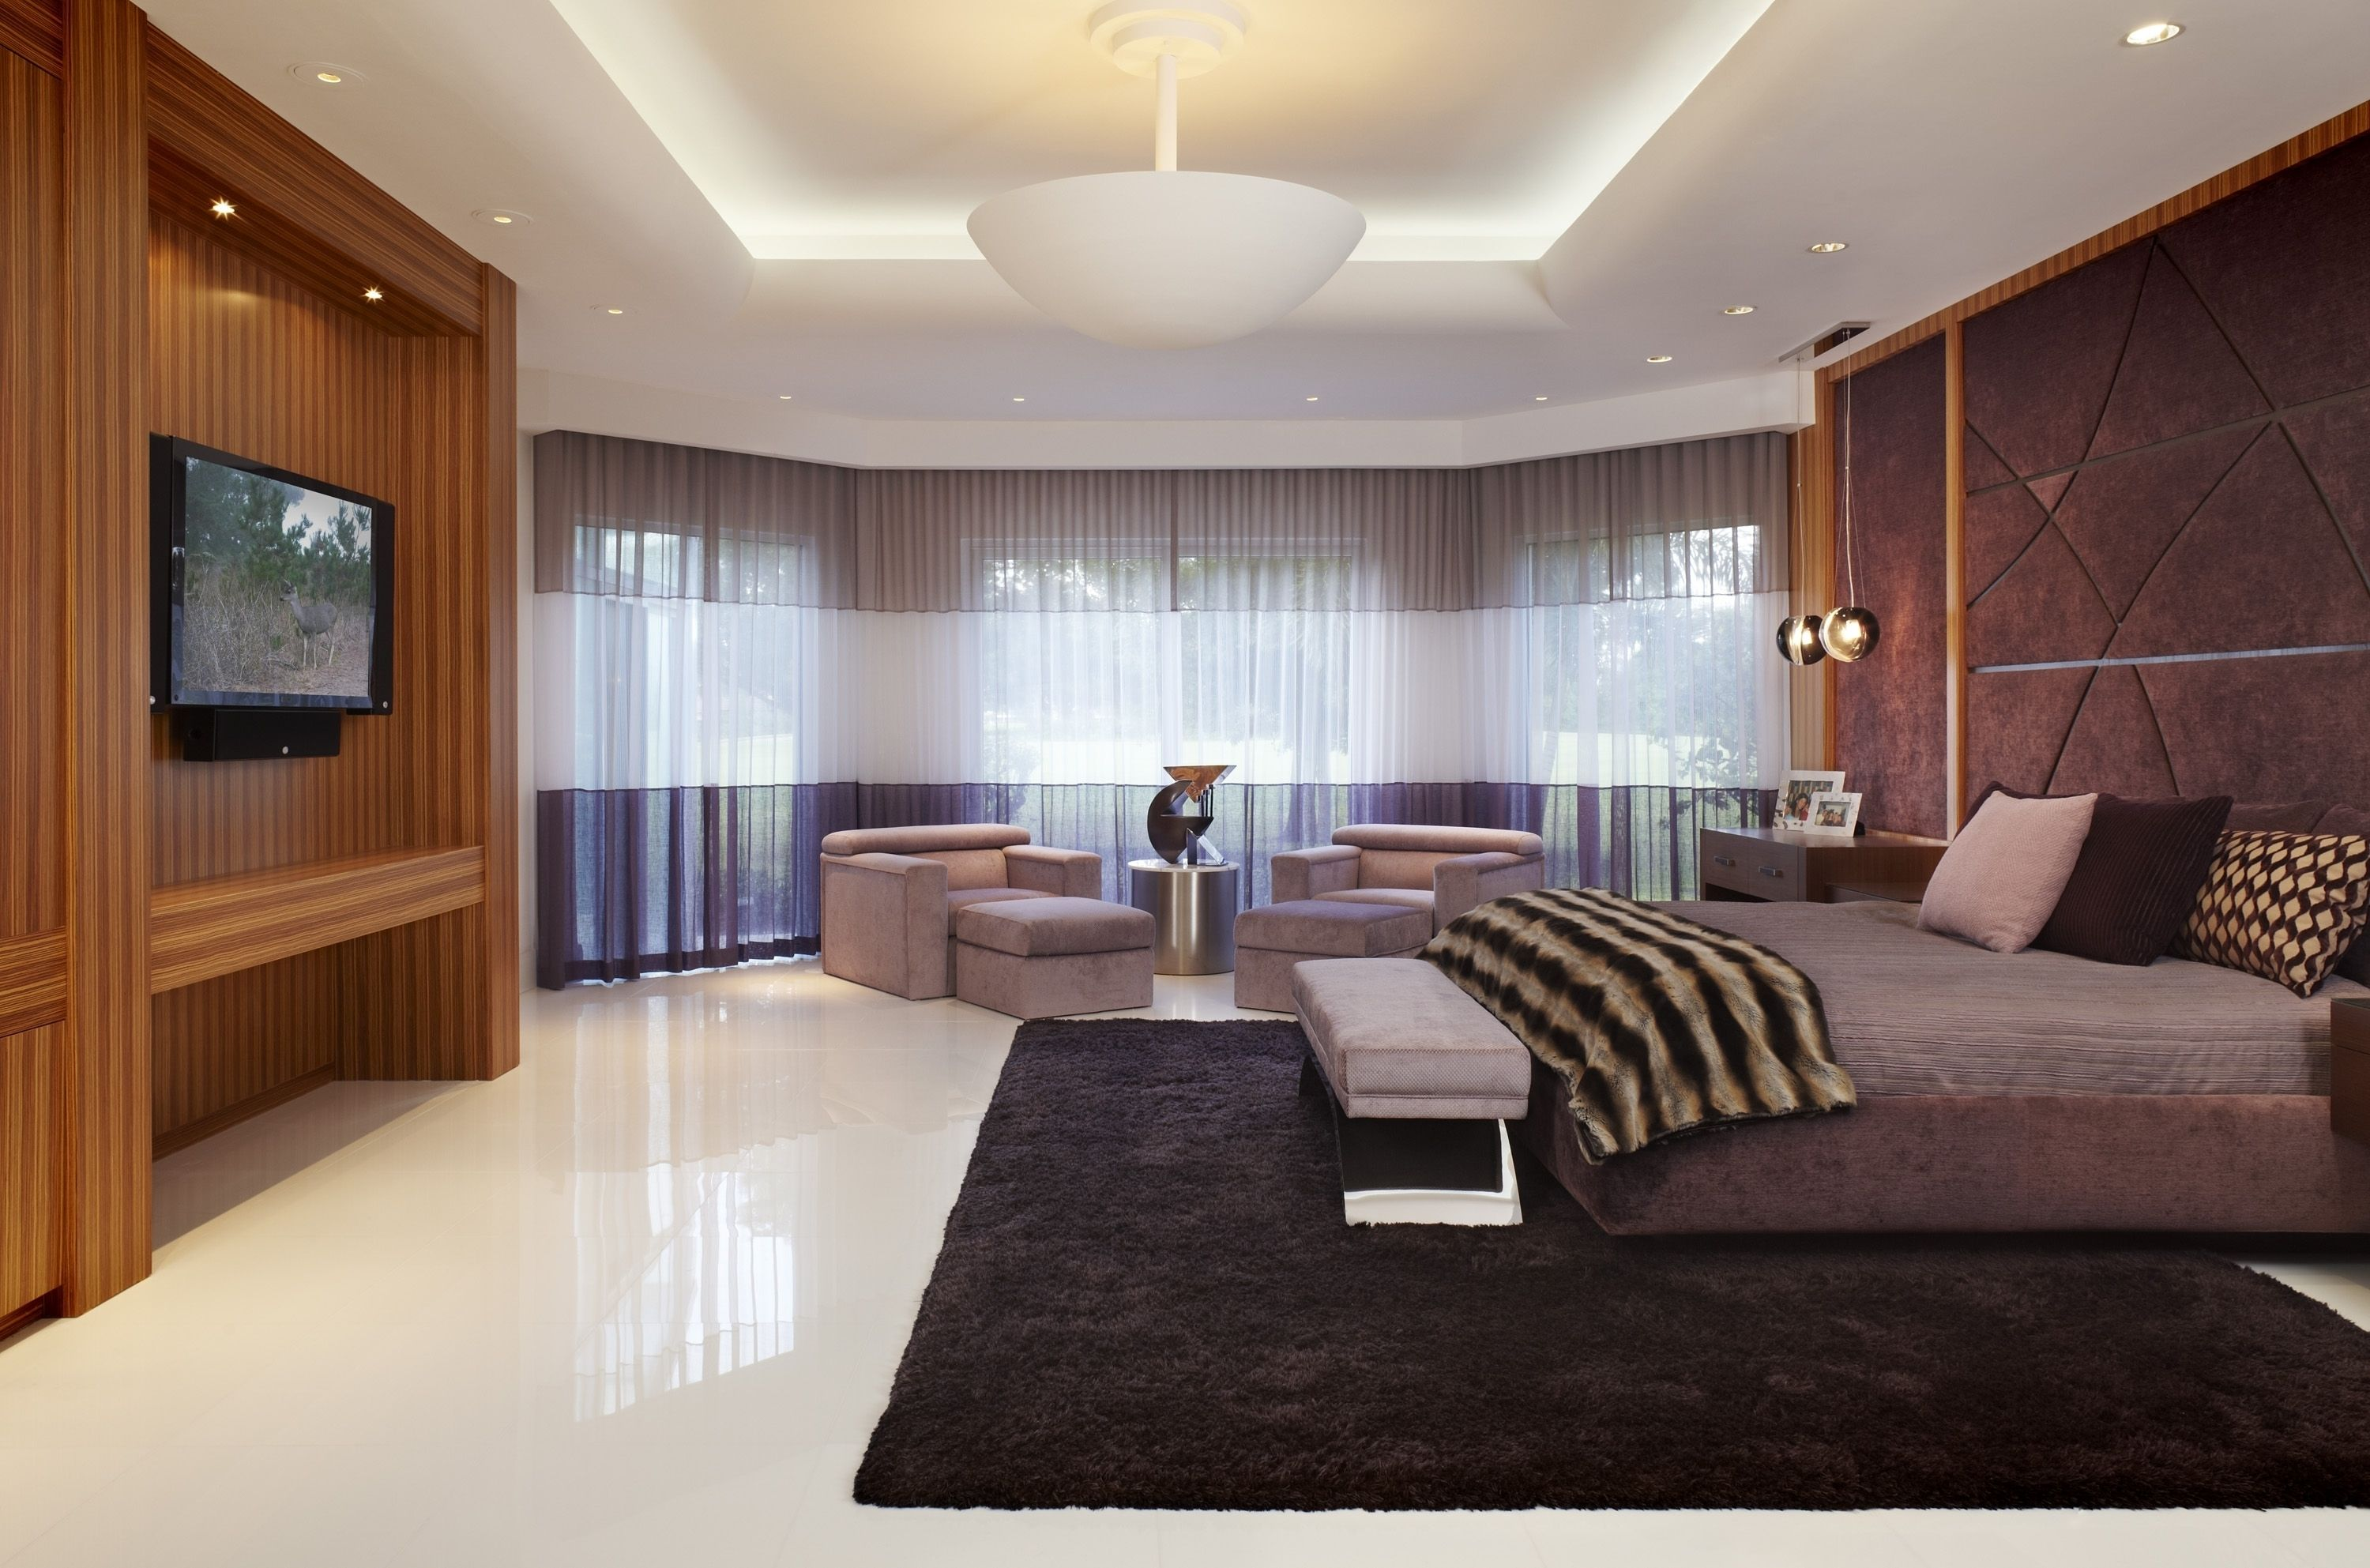 10 New How Big Is A Master Bedroom For Your Room Modern Master Bedroom Design Master Bedrooms Decor Big Bedrooms